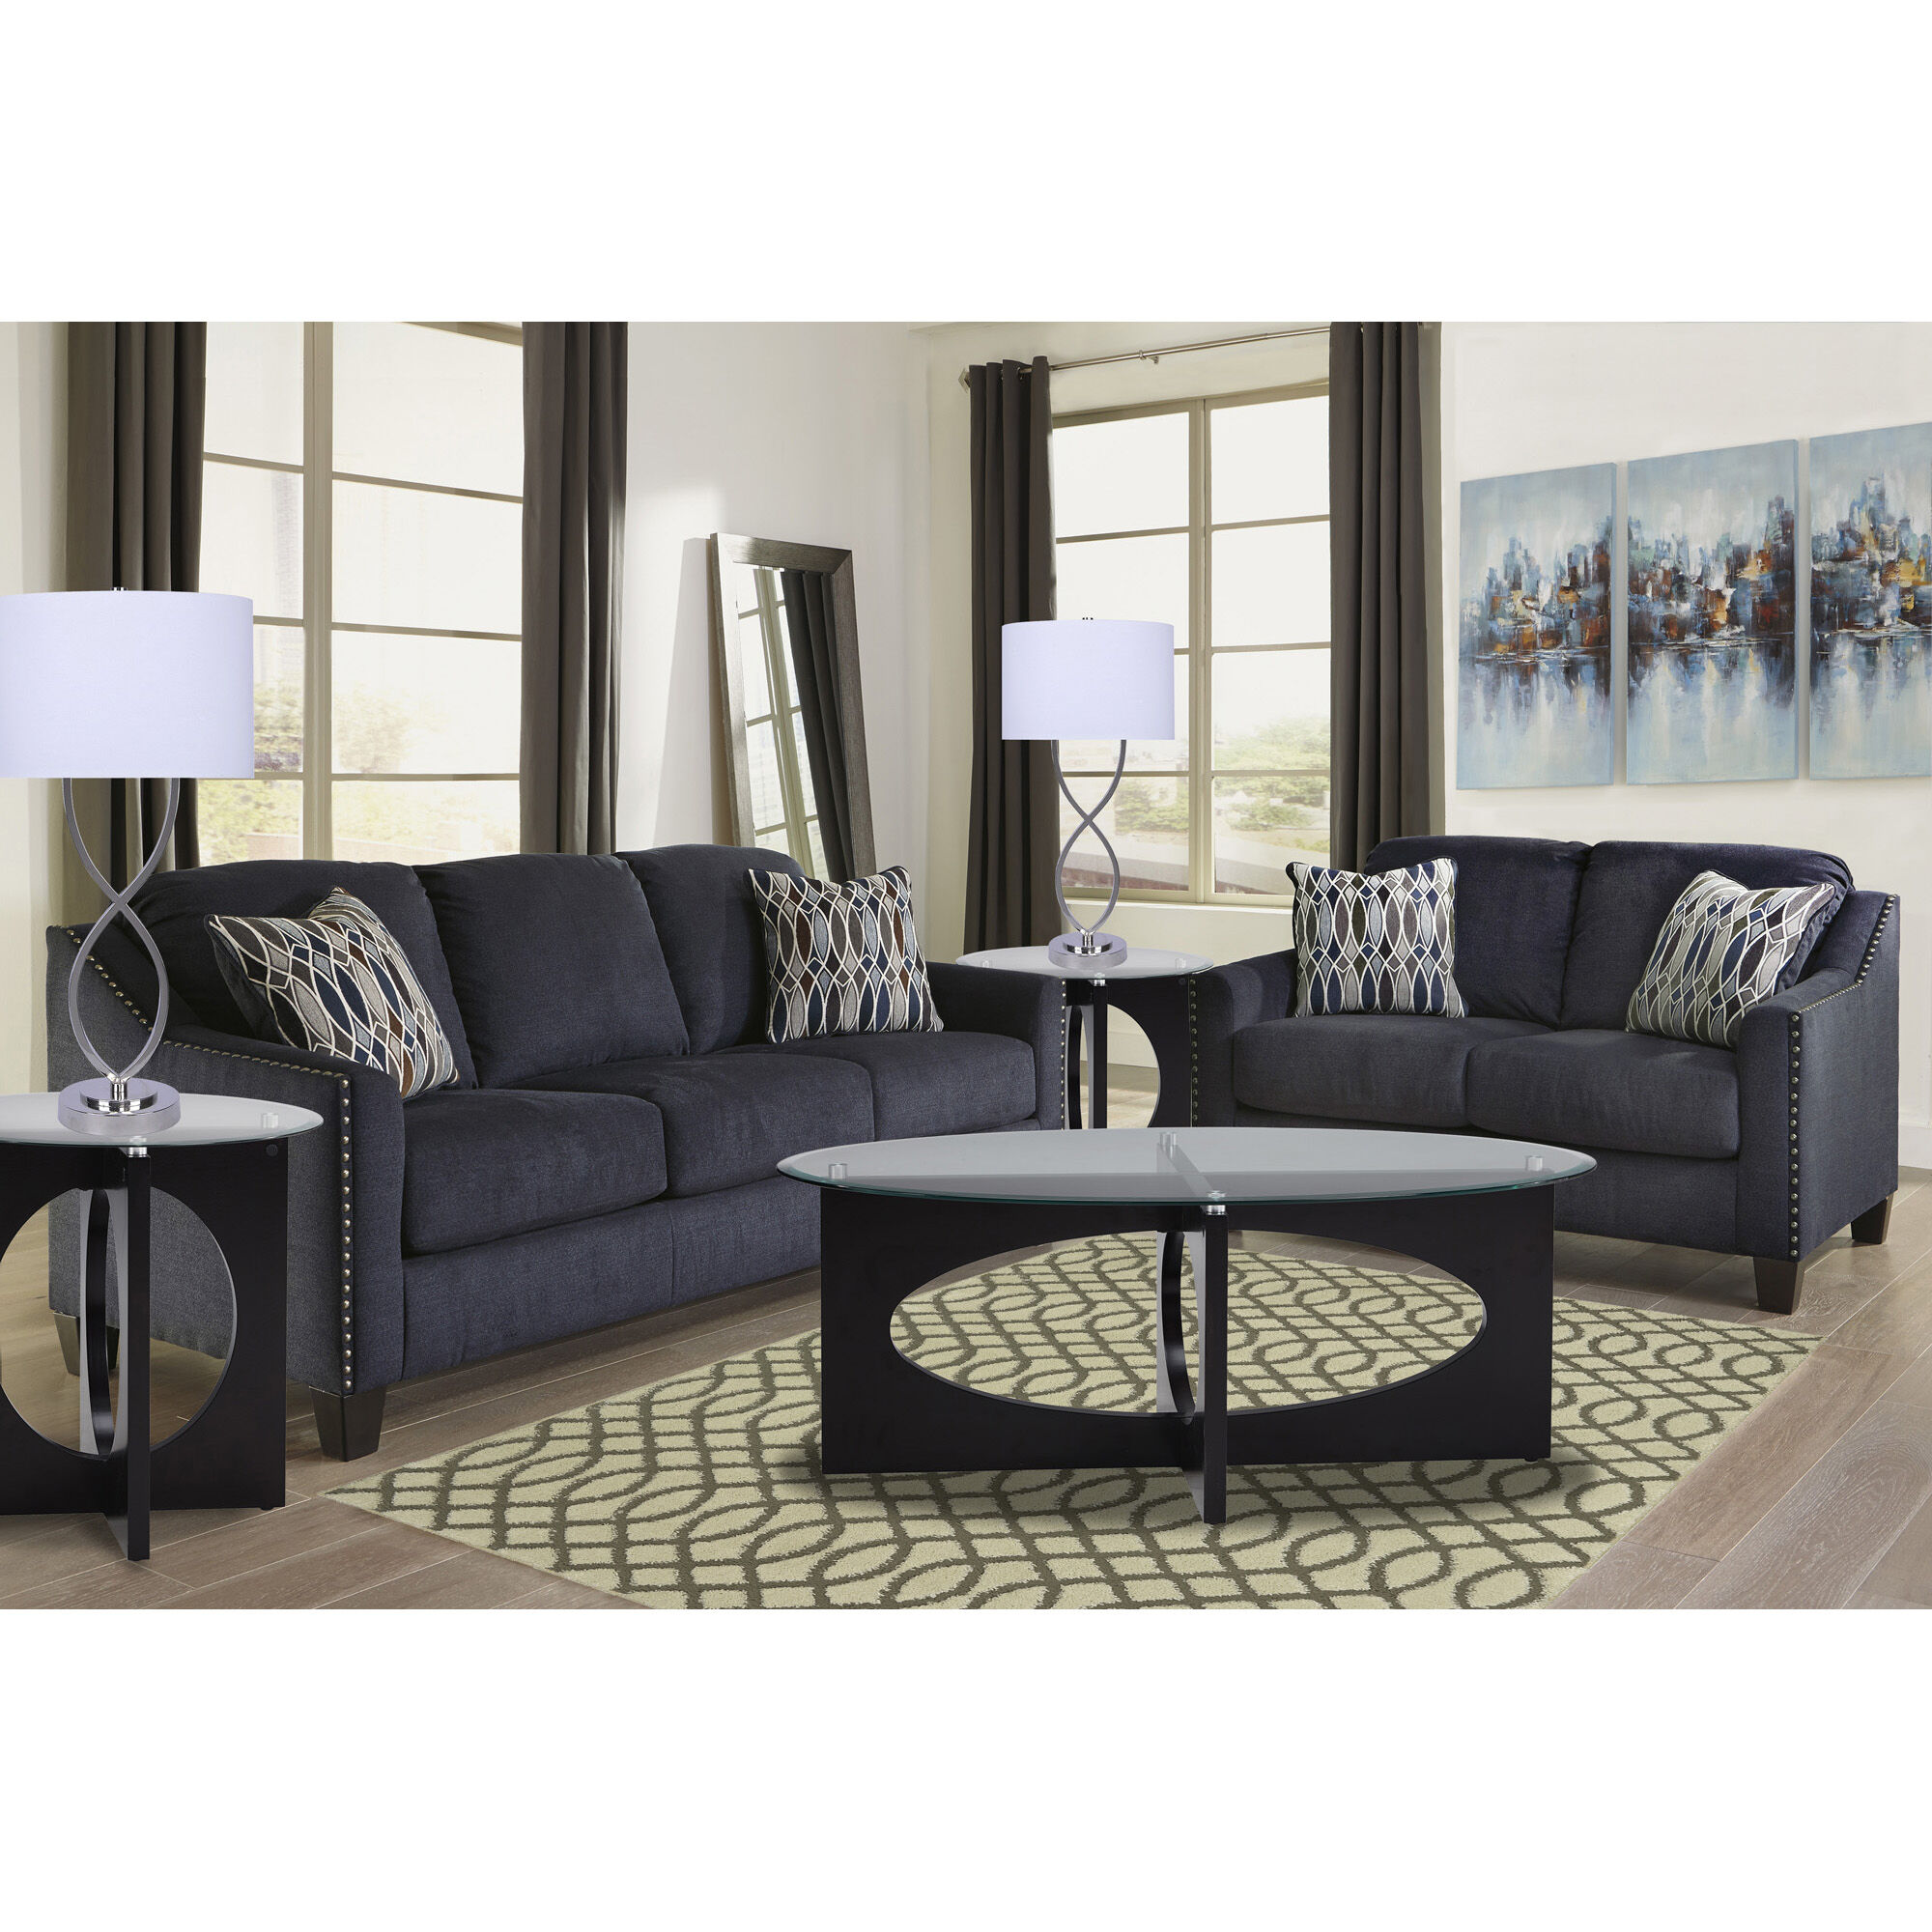 Rent to Own Living Room Furniture   Aaron s 7 Piece Creeal Heights Living Room Collection